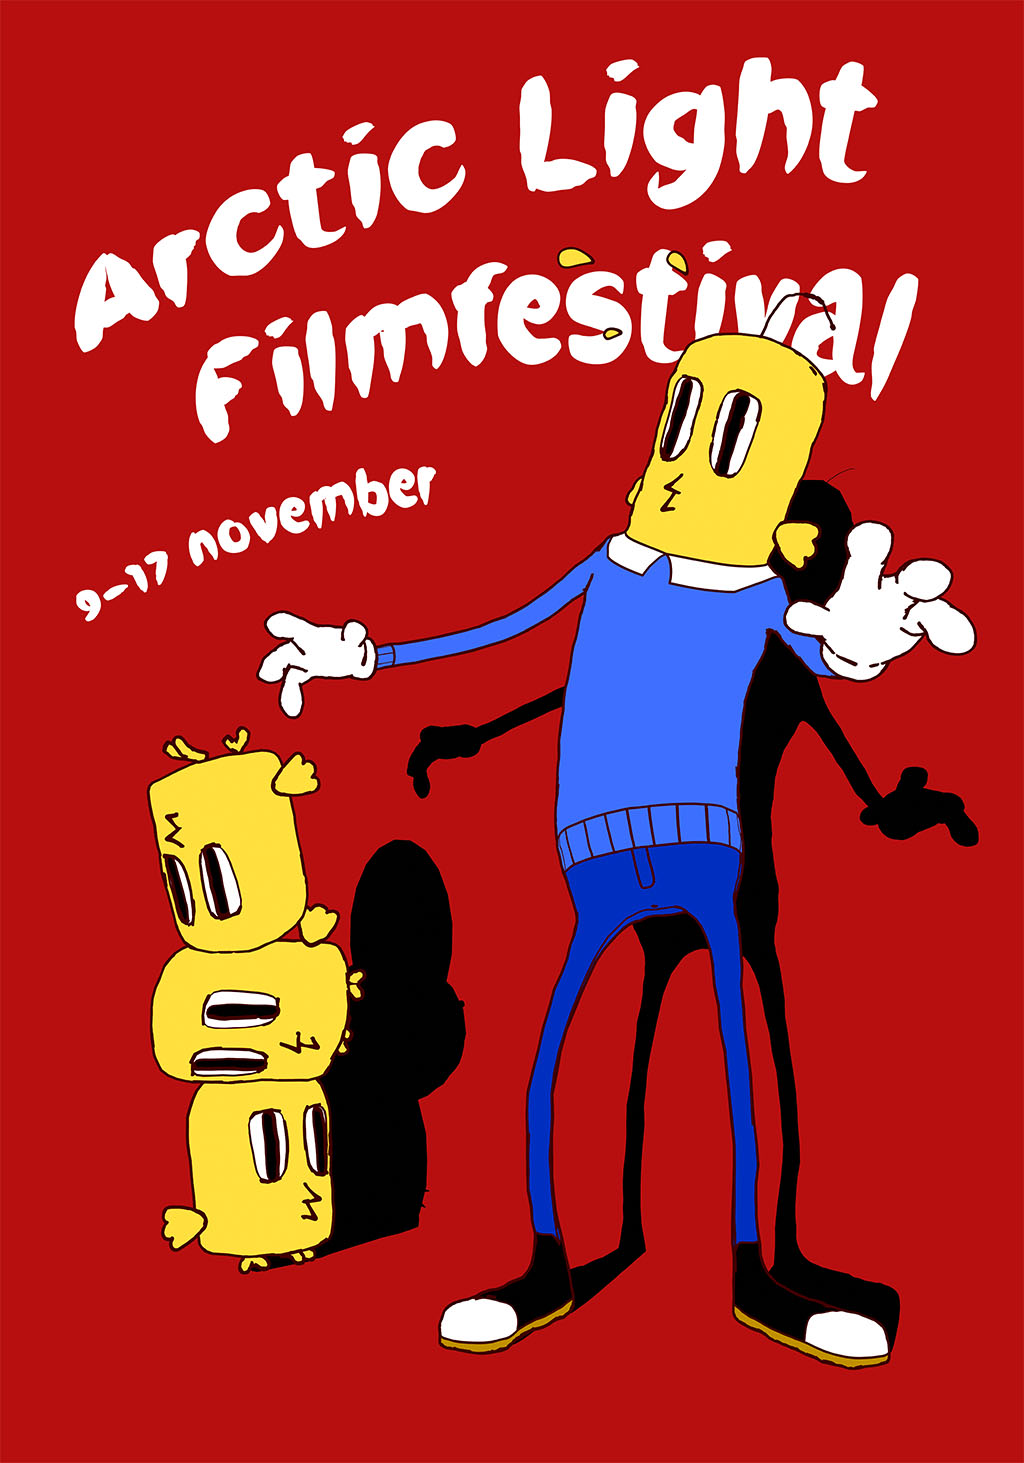 Arctic light film festival 2018 poster